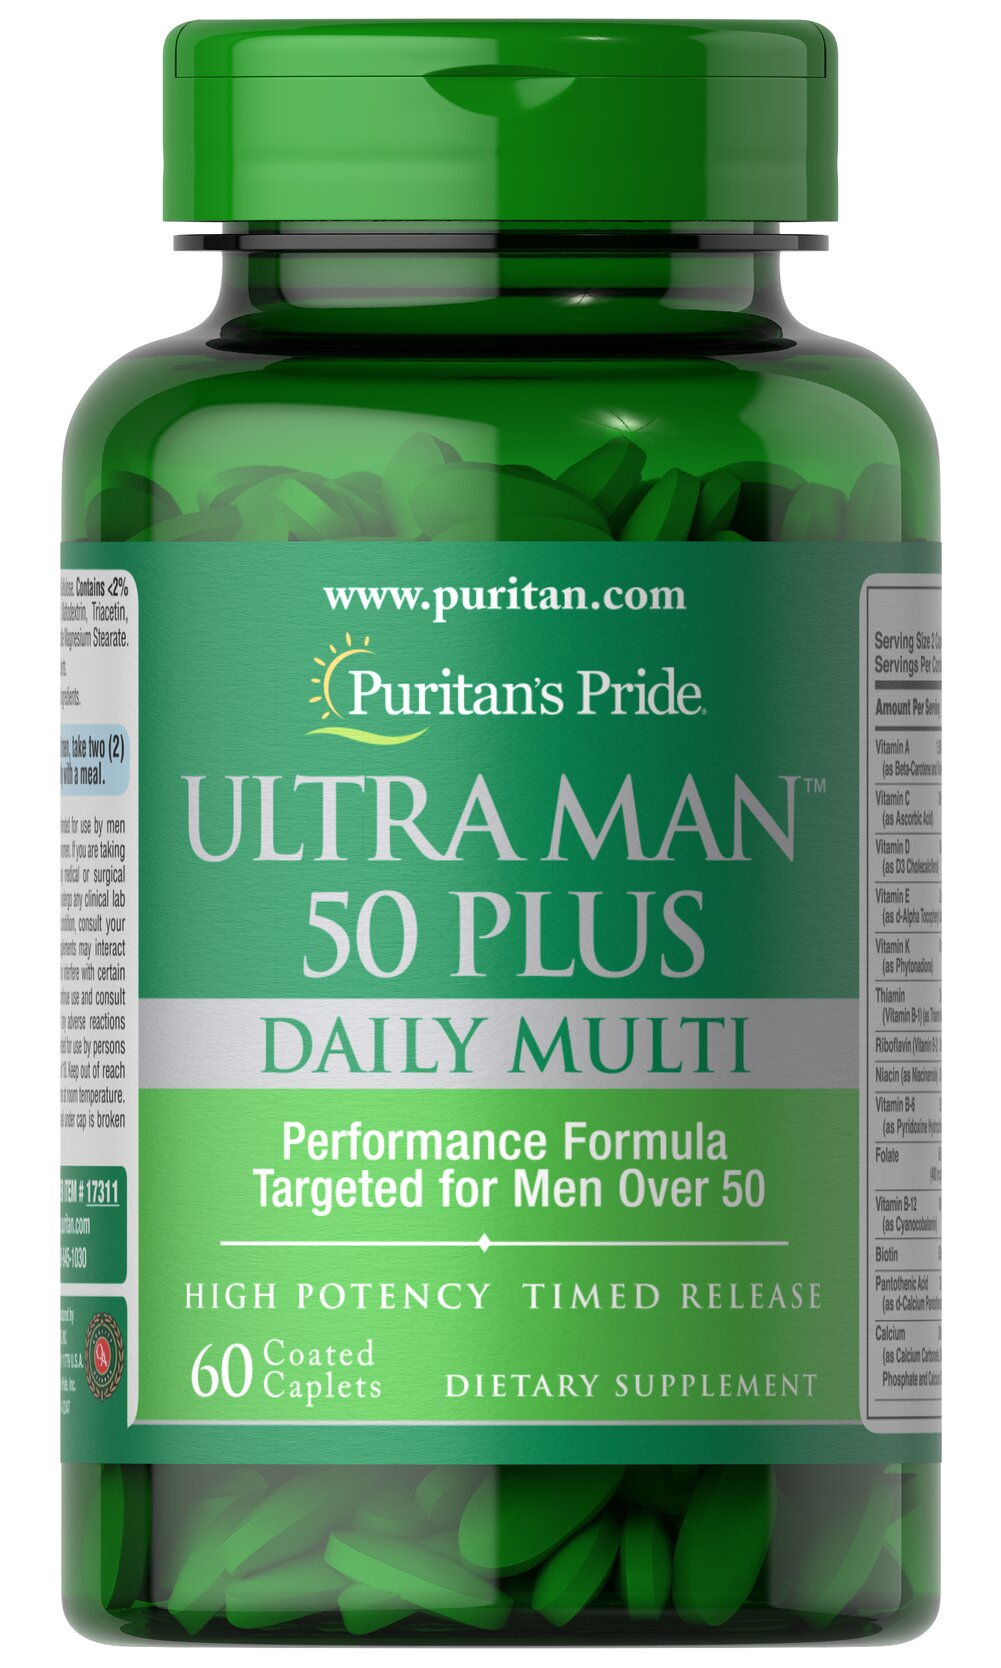 Ultra Vita Man™ 50 Plus • High performance multi with over 50 important nutrients for men's health**<br />• Created especially for men over 50<br />• Unlike other multis, Ultra Vita Man 50 Plus is enhanced with vital nutrients not commonly found in the diet.<br />• Just two coated caplets a day<br />• Features Zinc, an important mineral that contributes to normal semen production and sexual health** 60 Caplets  $15.99